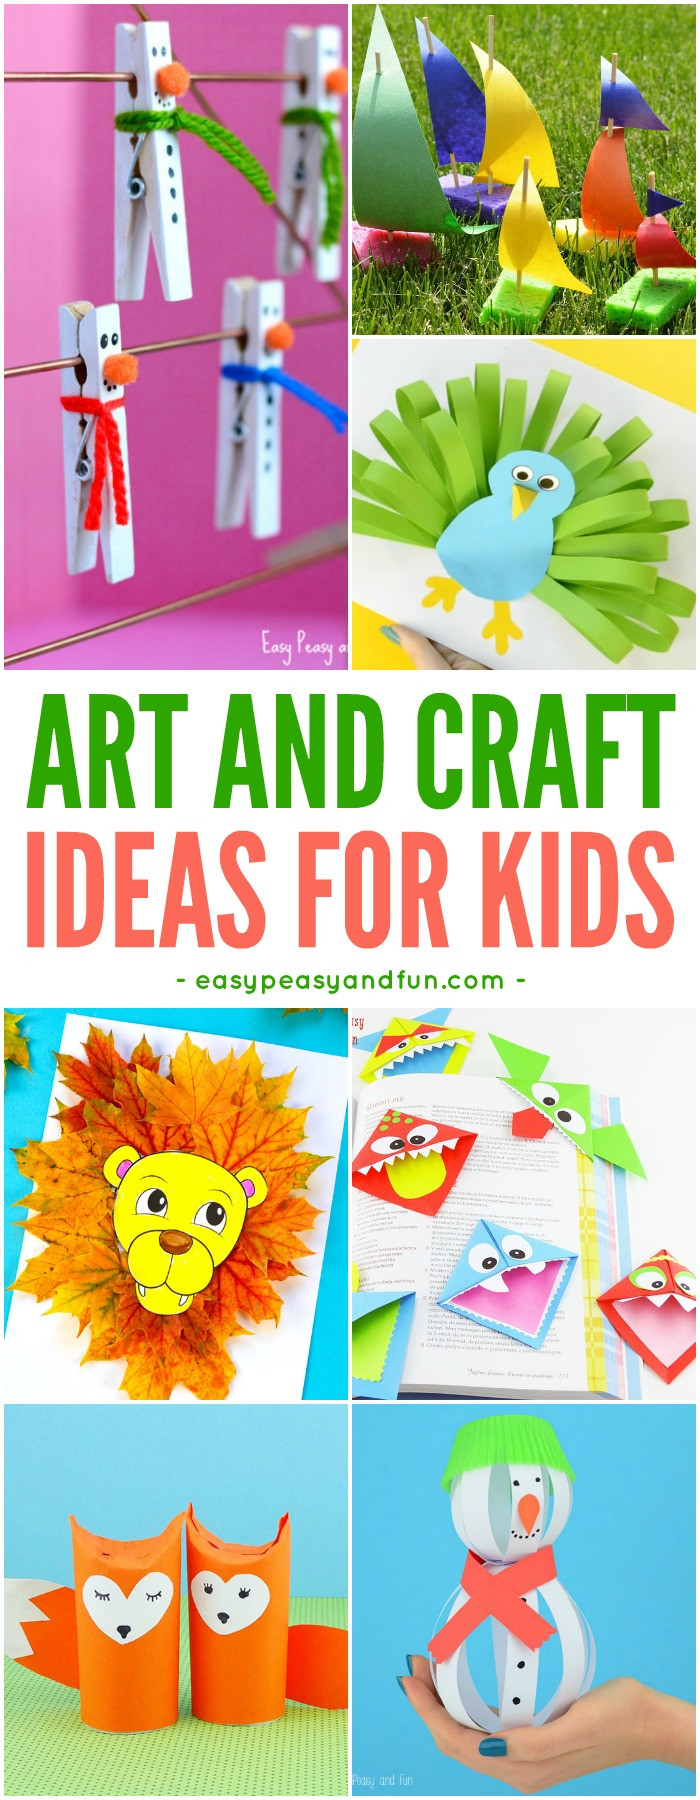 Best ideas about Arts And Crafts For Children . Save or Pin Crafts For Kids Tons of Art and Craft Ideas for Kids to Now.